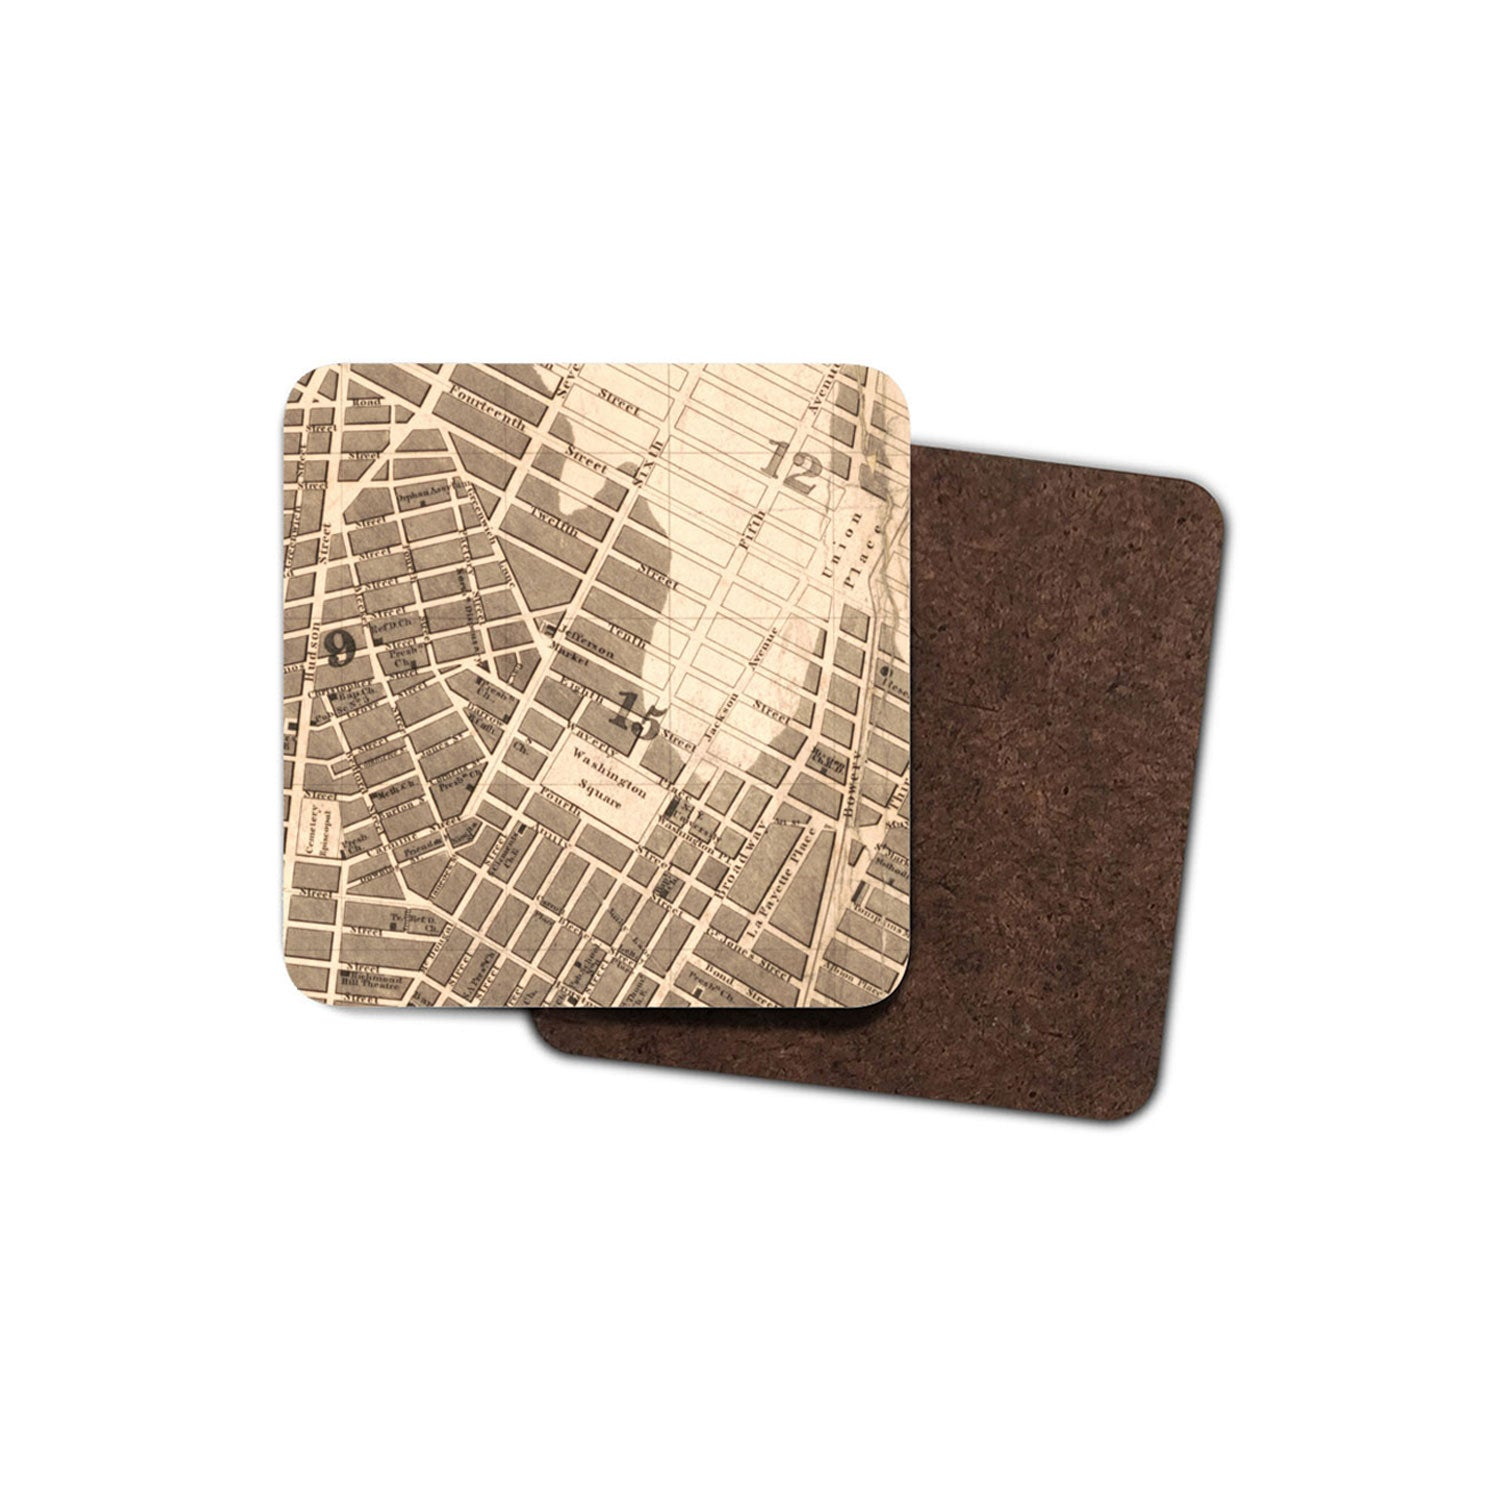 drinks coaster with historic map of new york printed on it